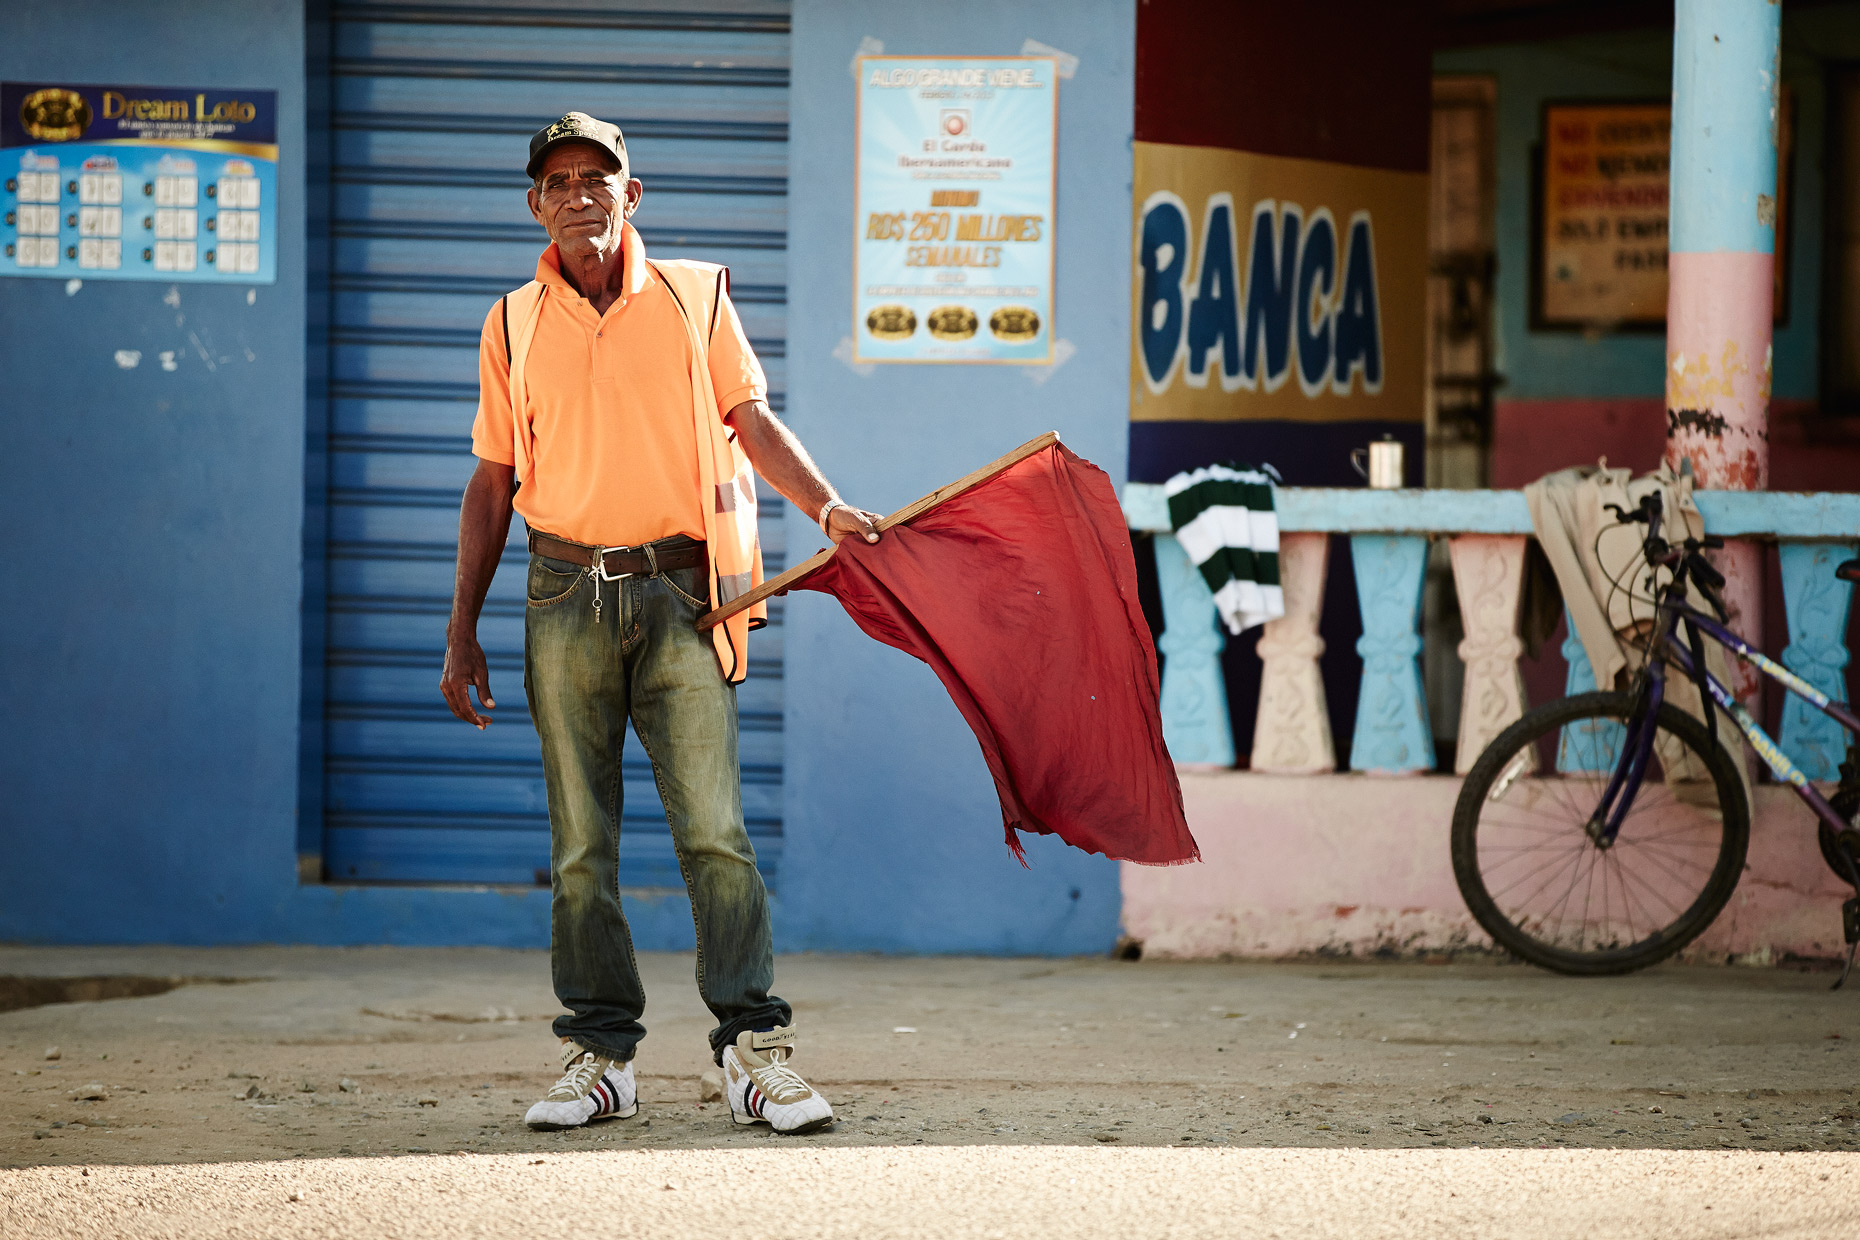 Travel Photography Dominican Republic Derek Israelsen Waving Red Flag